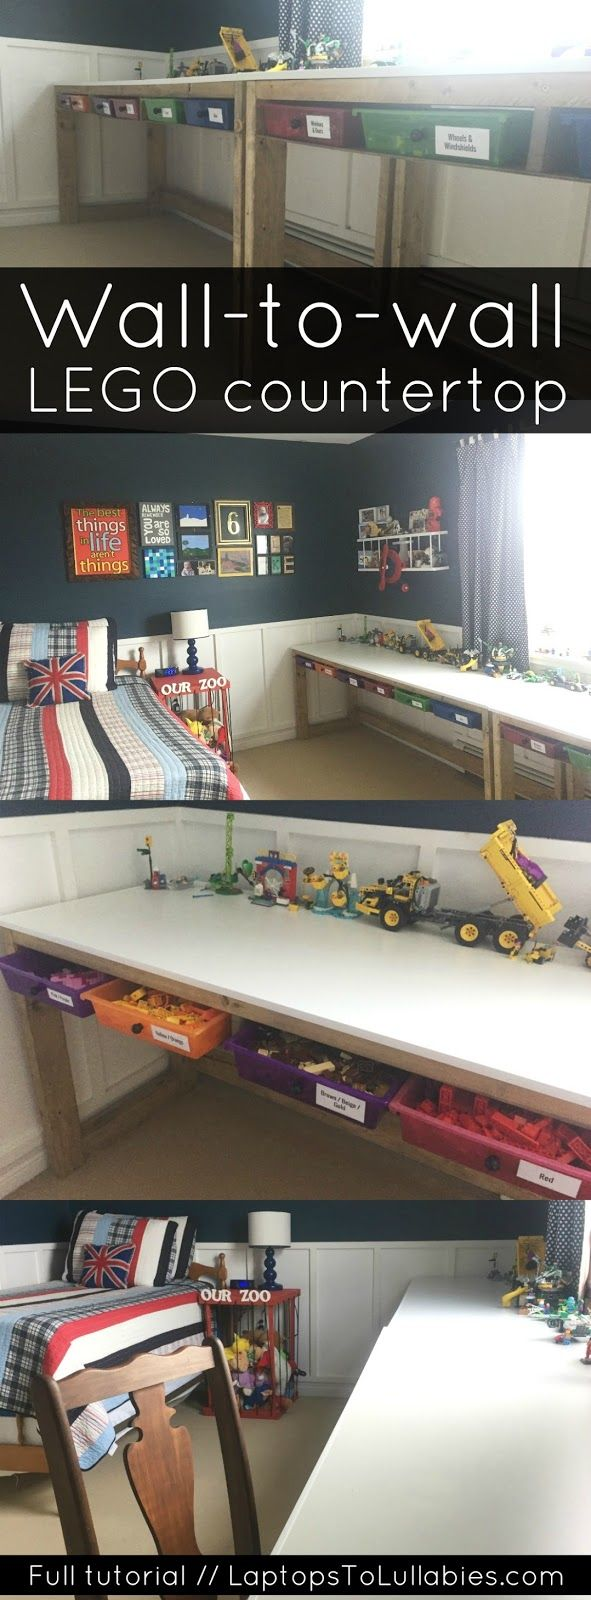 Laptops to Lullabies: DIY Lego countertops // Tons of storage and playing surface for the Lego-loving kid in your life. #tutorial #woodworking #DIY #LEGO #storage #organization #playroom #toys #toystorage